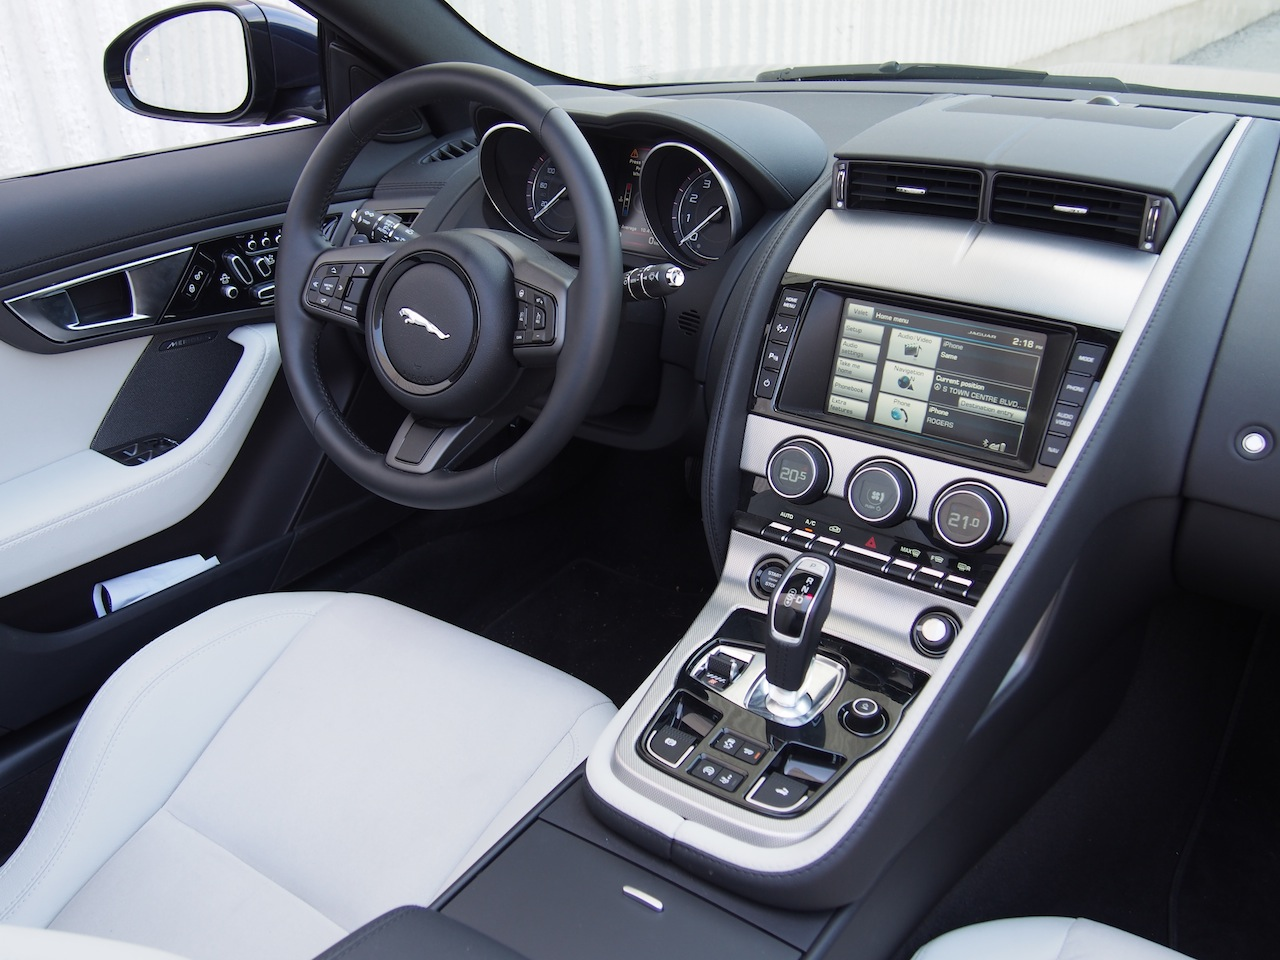 ... 2015 Jaguar F Type V6 Convertible Indigo Blue Metallic Interior White  Black Dashboard ...